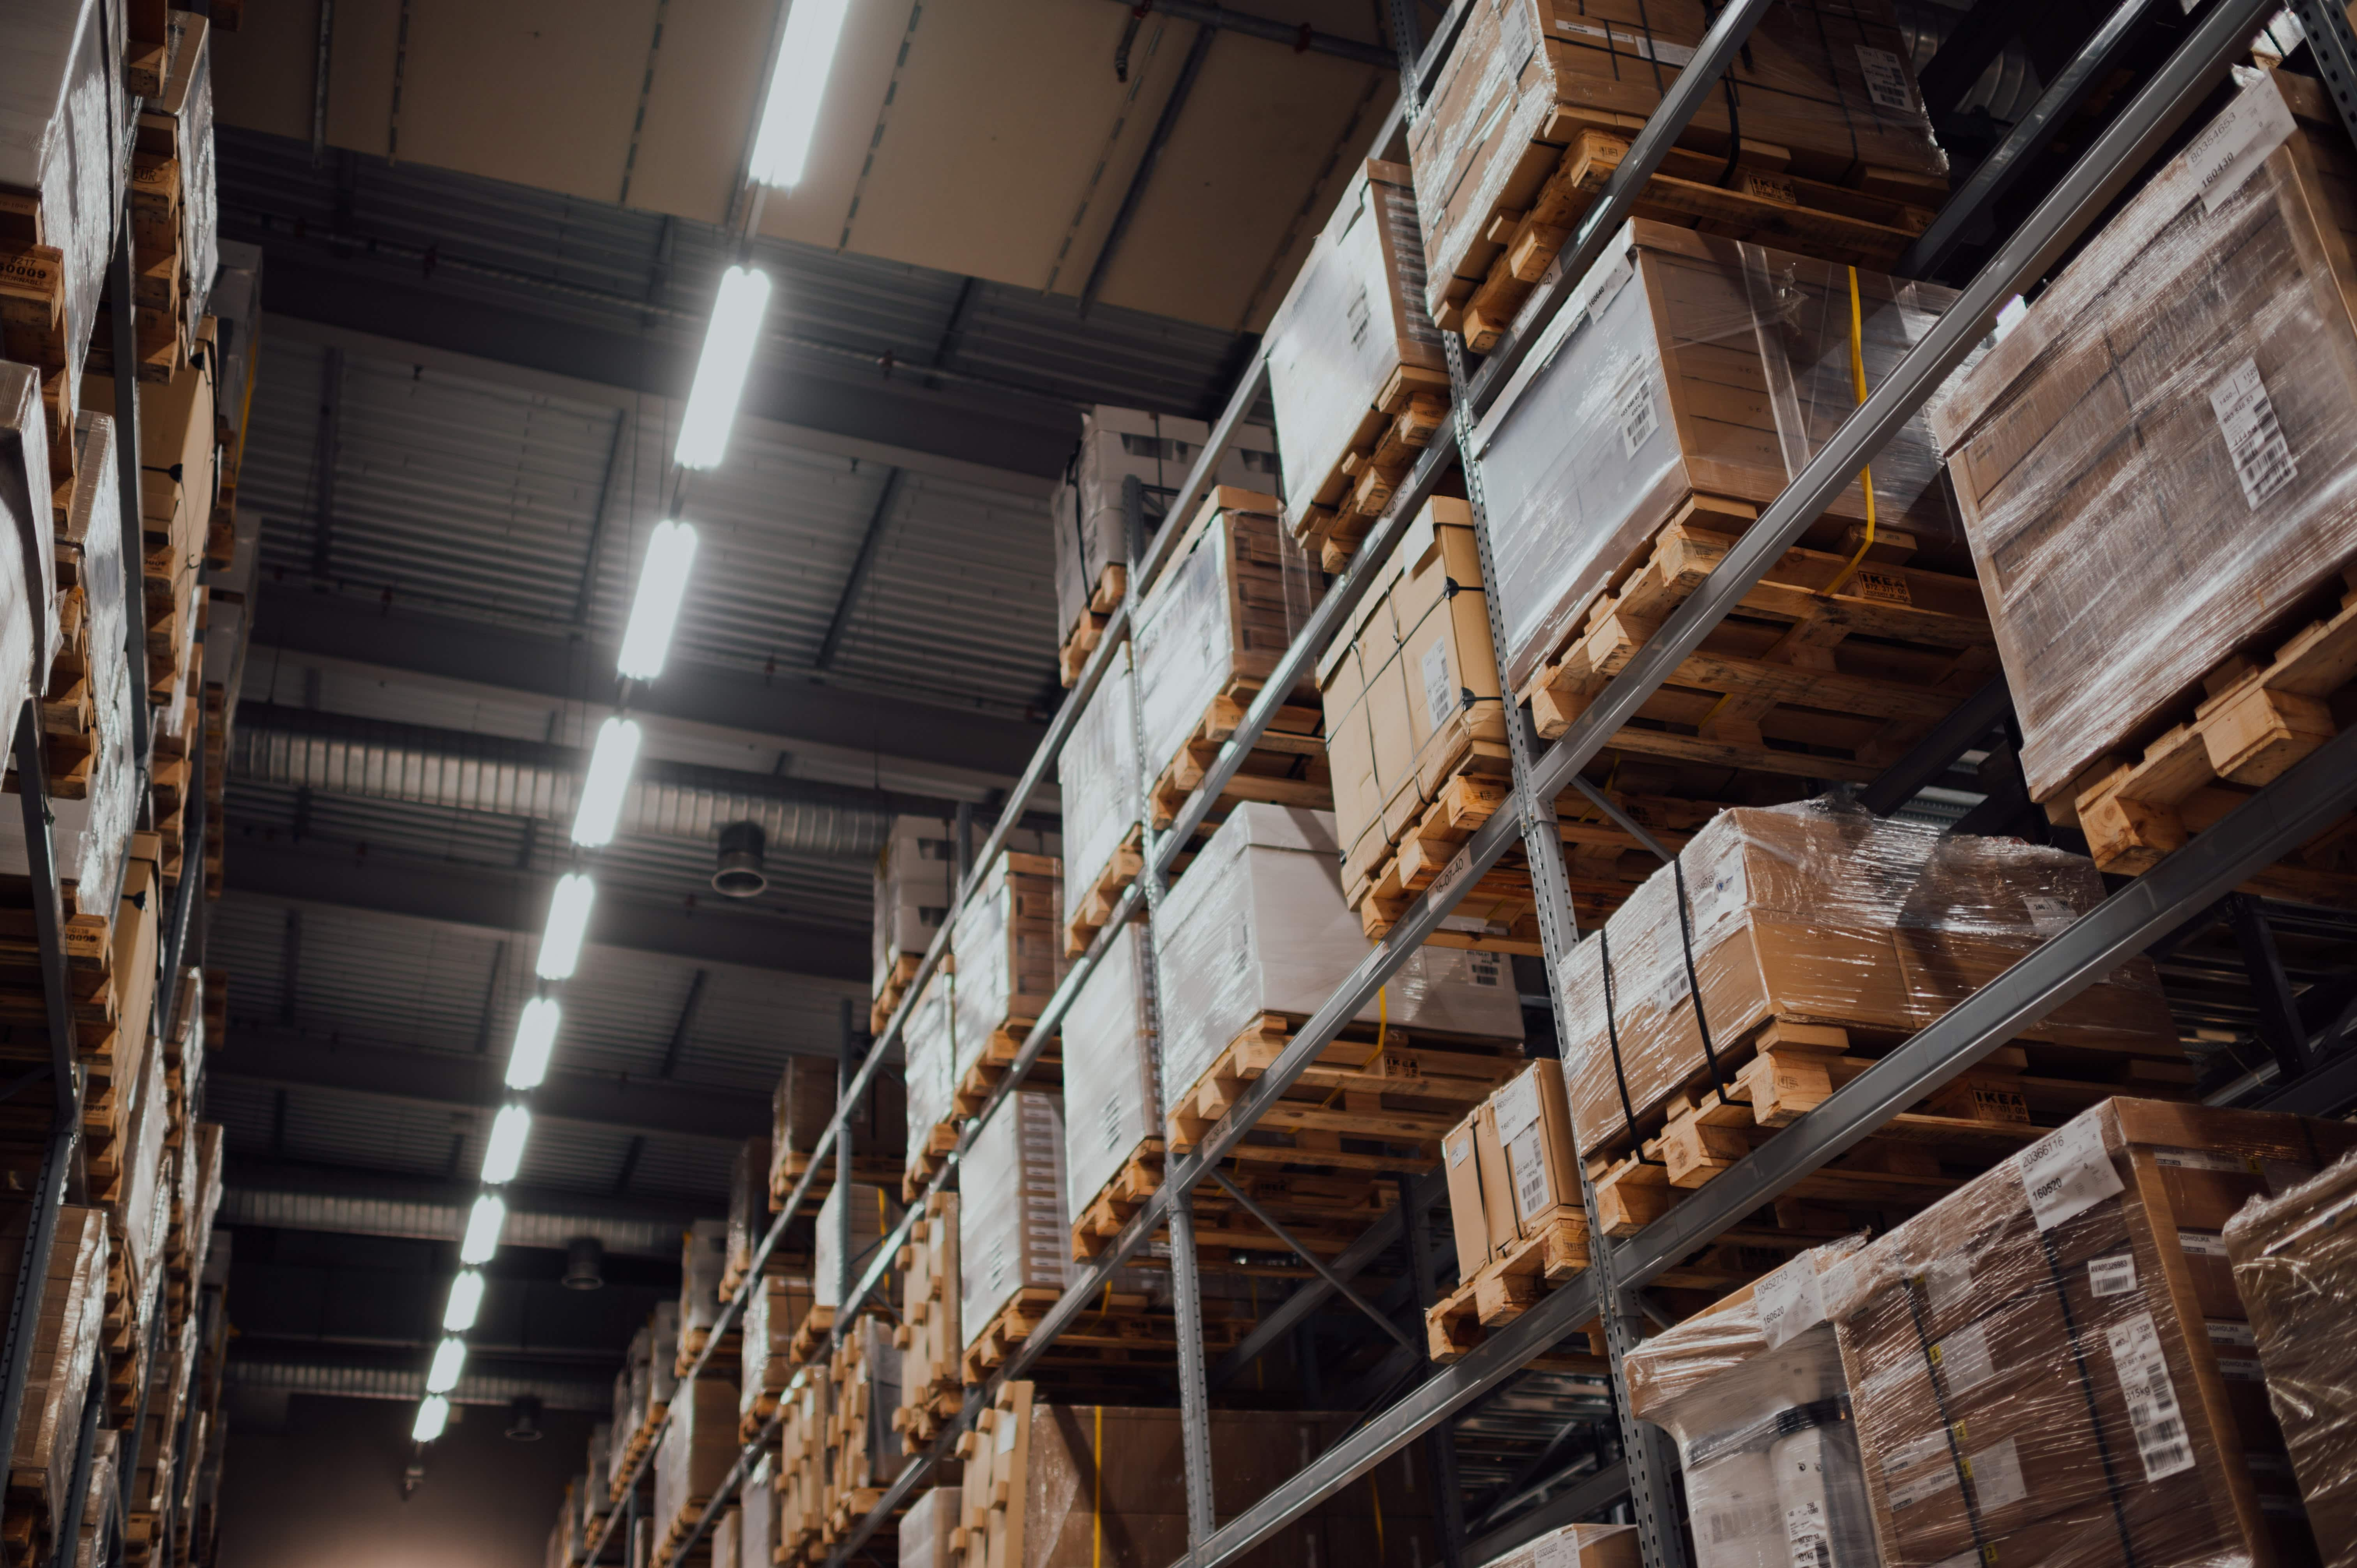 Inventory Tracking in a warehouse